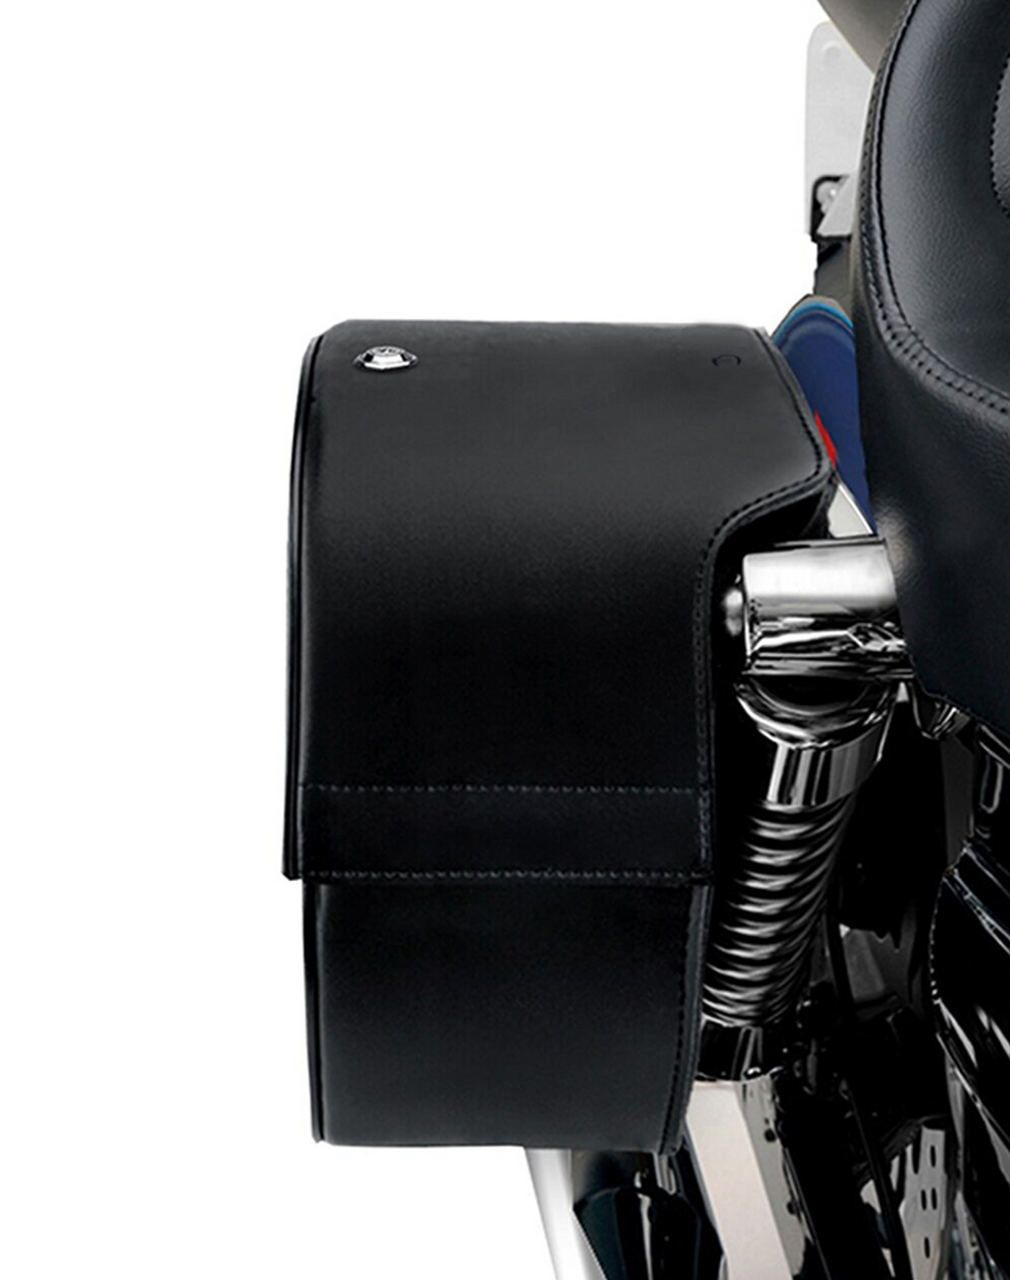 Viking Shock Cutout Single Strap Large Slanted Large Motorcycle Saddlebags For Harley Sportster Seventy Two 72 Shock cutout view